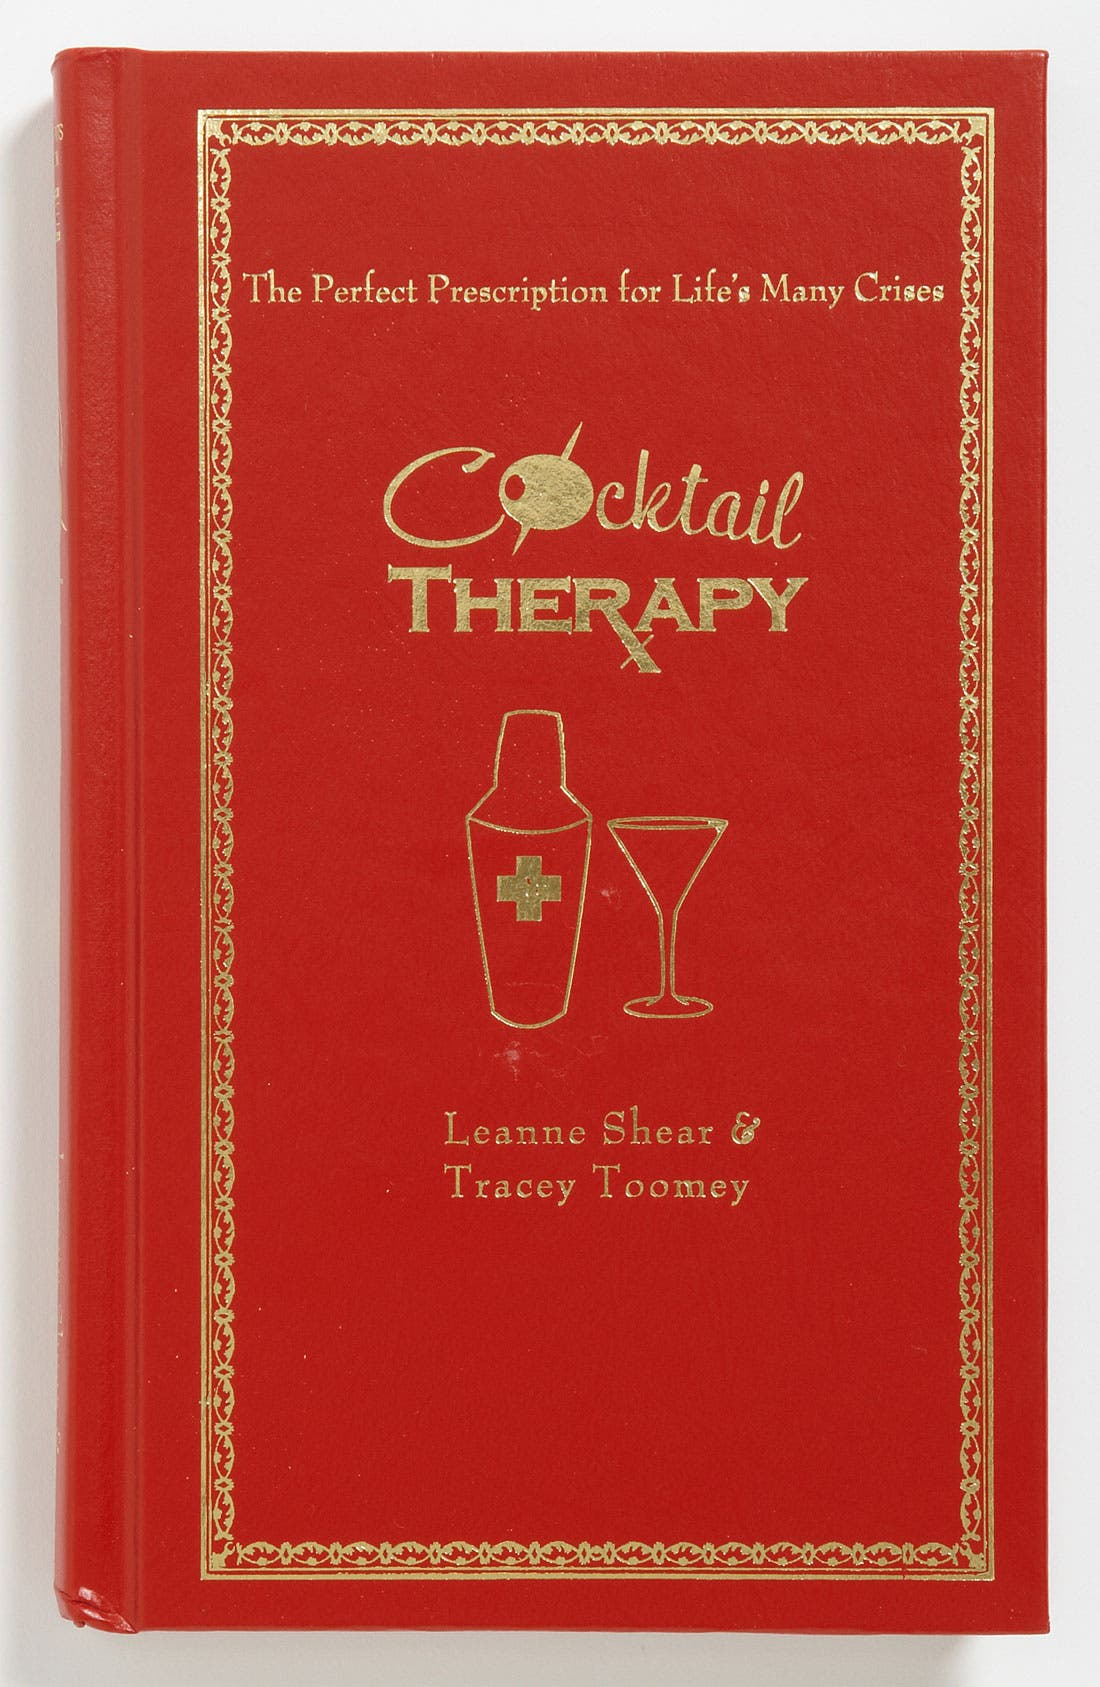 'Cocktail Therapy' Guide Book,                         Main,                         color, 960